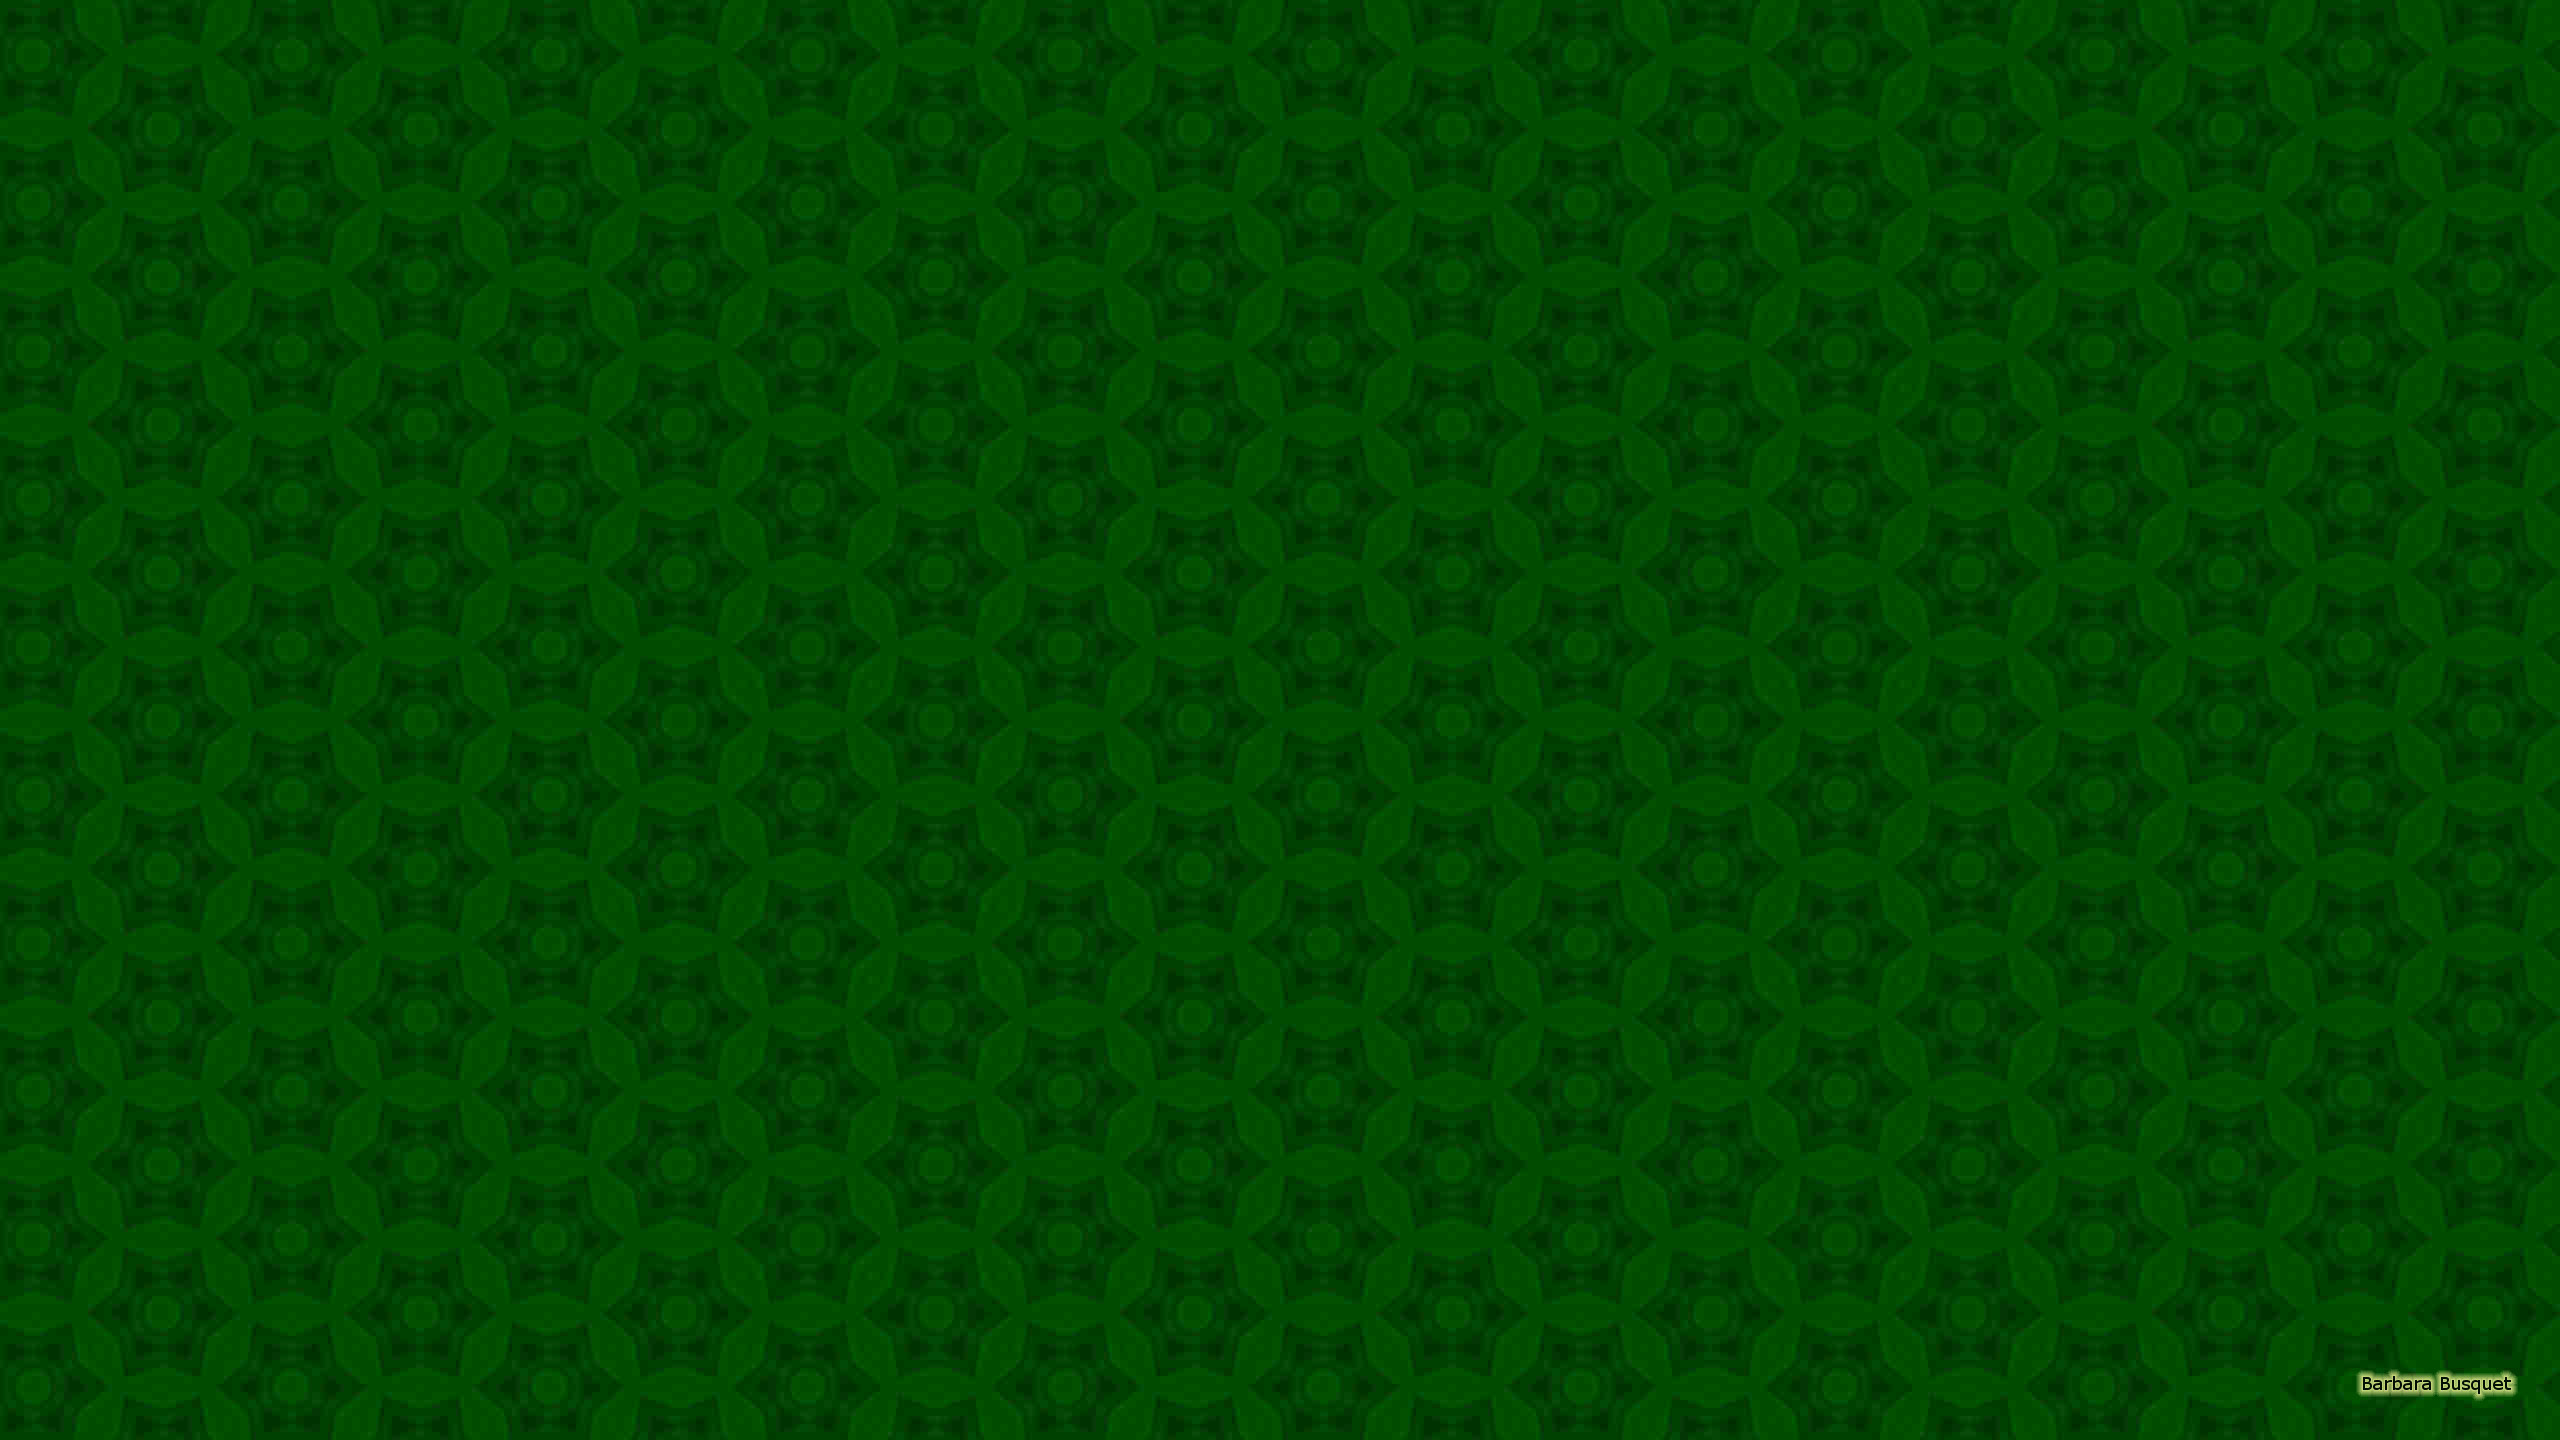 2560x1440 Dark green pattern wallpaper